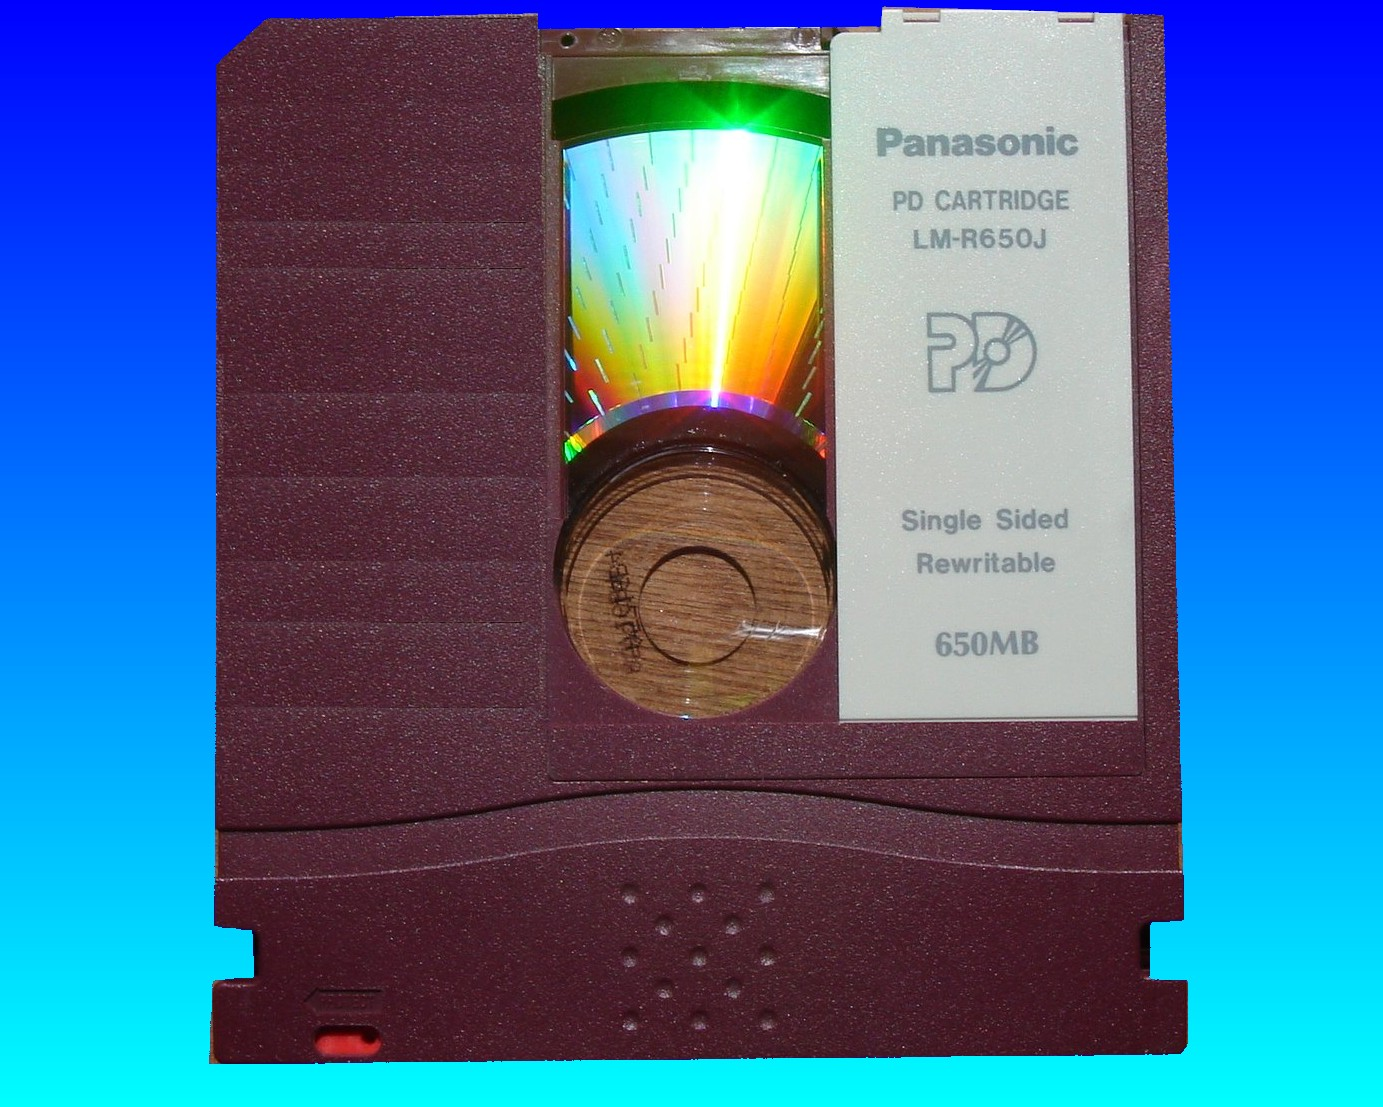 A PD disk cartridge by Panasonic which stored 650mb of data which will shortly undergo transfer to CD.